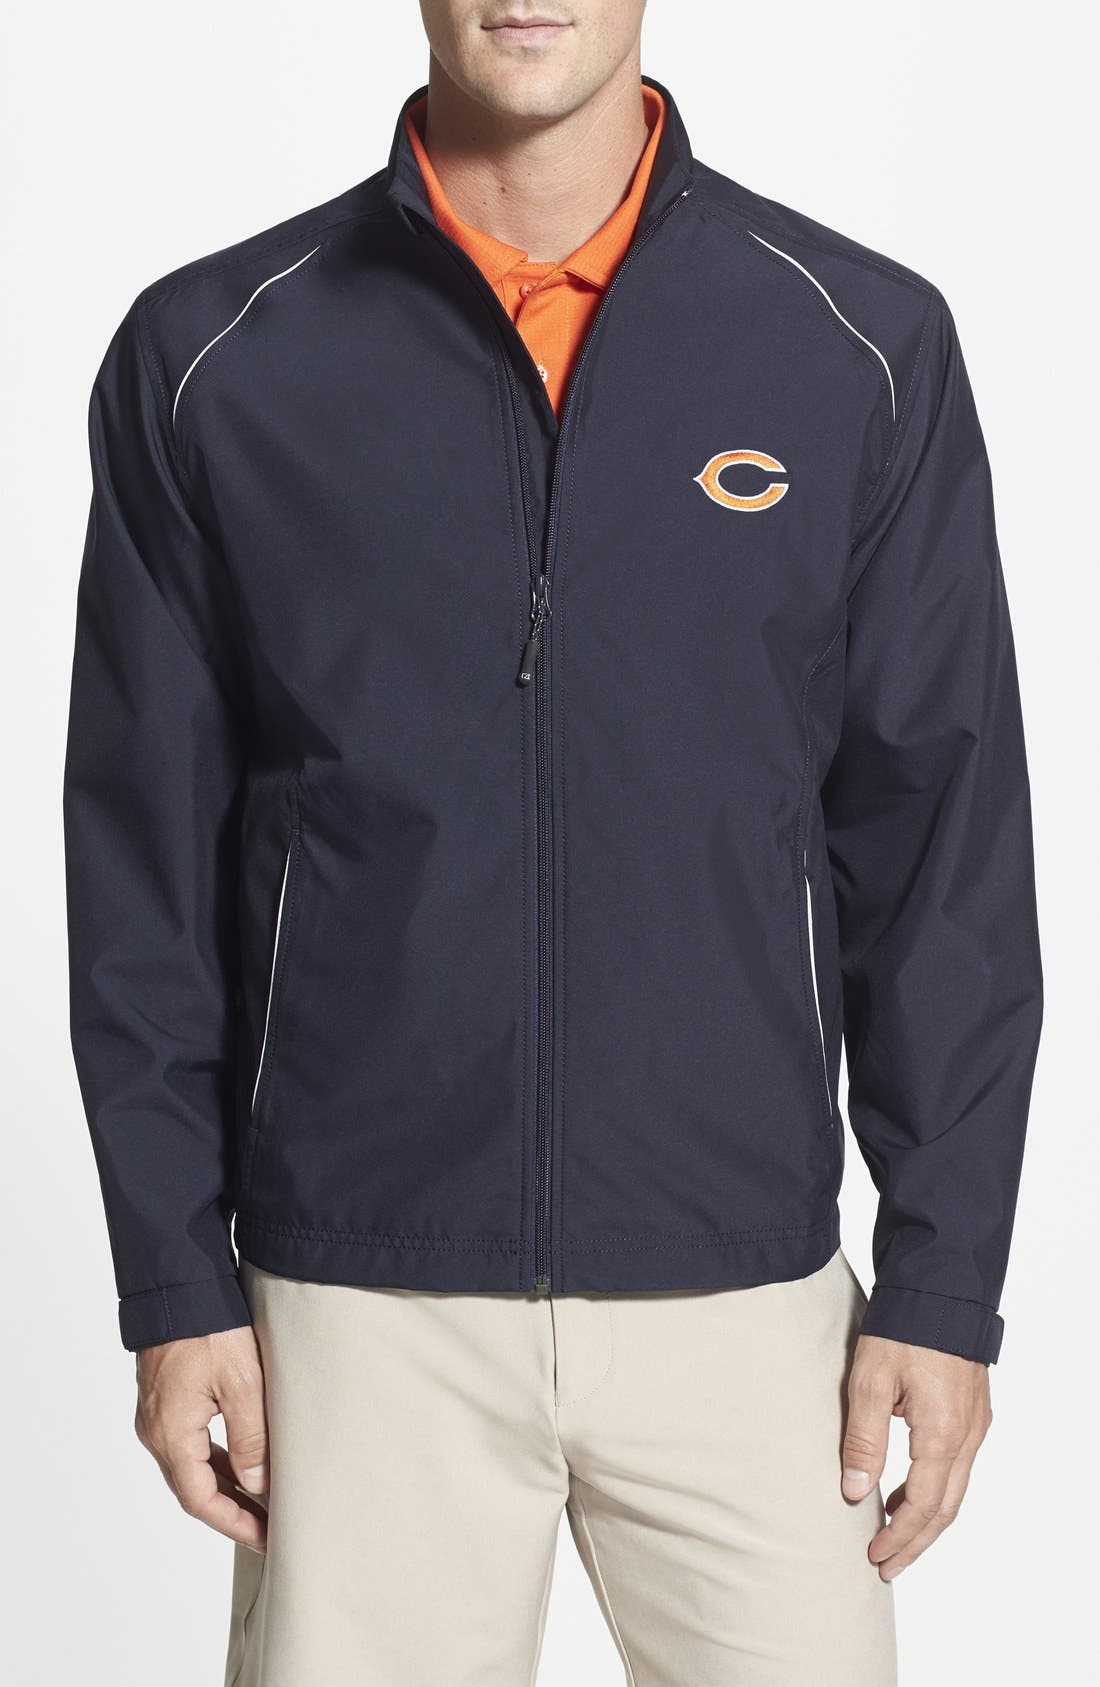 Alternate Image 1 Selected - Cutter & Buck 'Chicago Bears - Beacon' WeatherTec Wind & Water Resistant Jacket